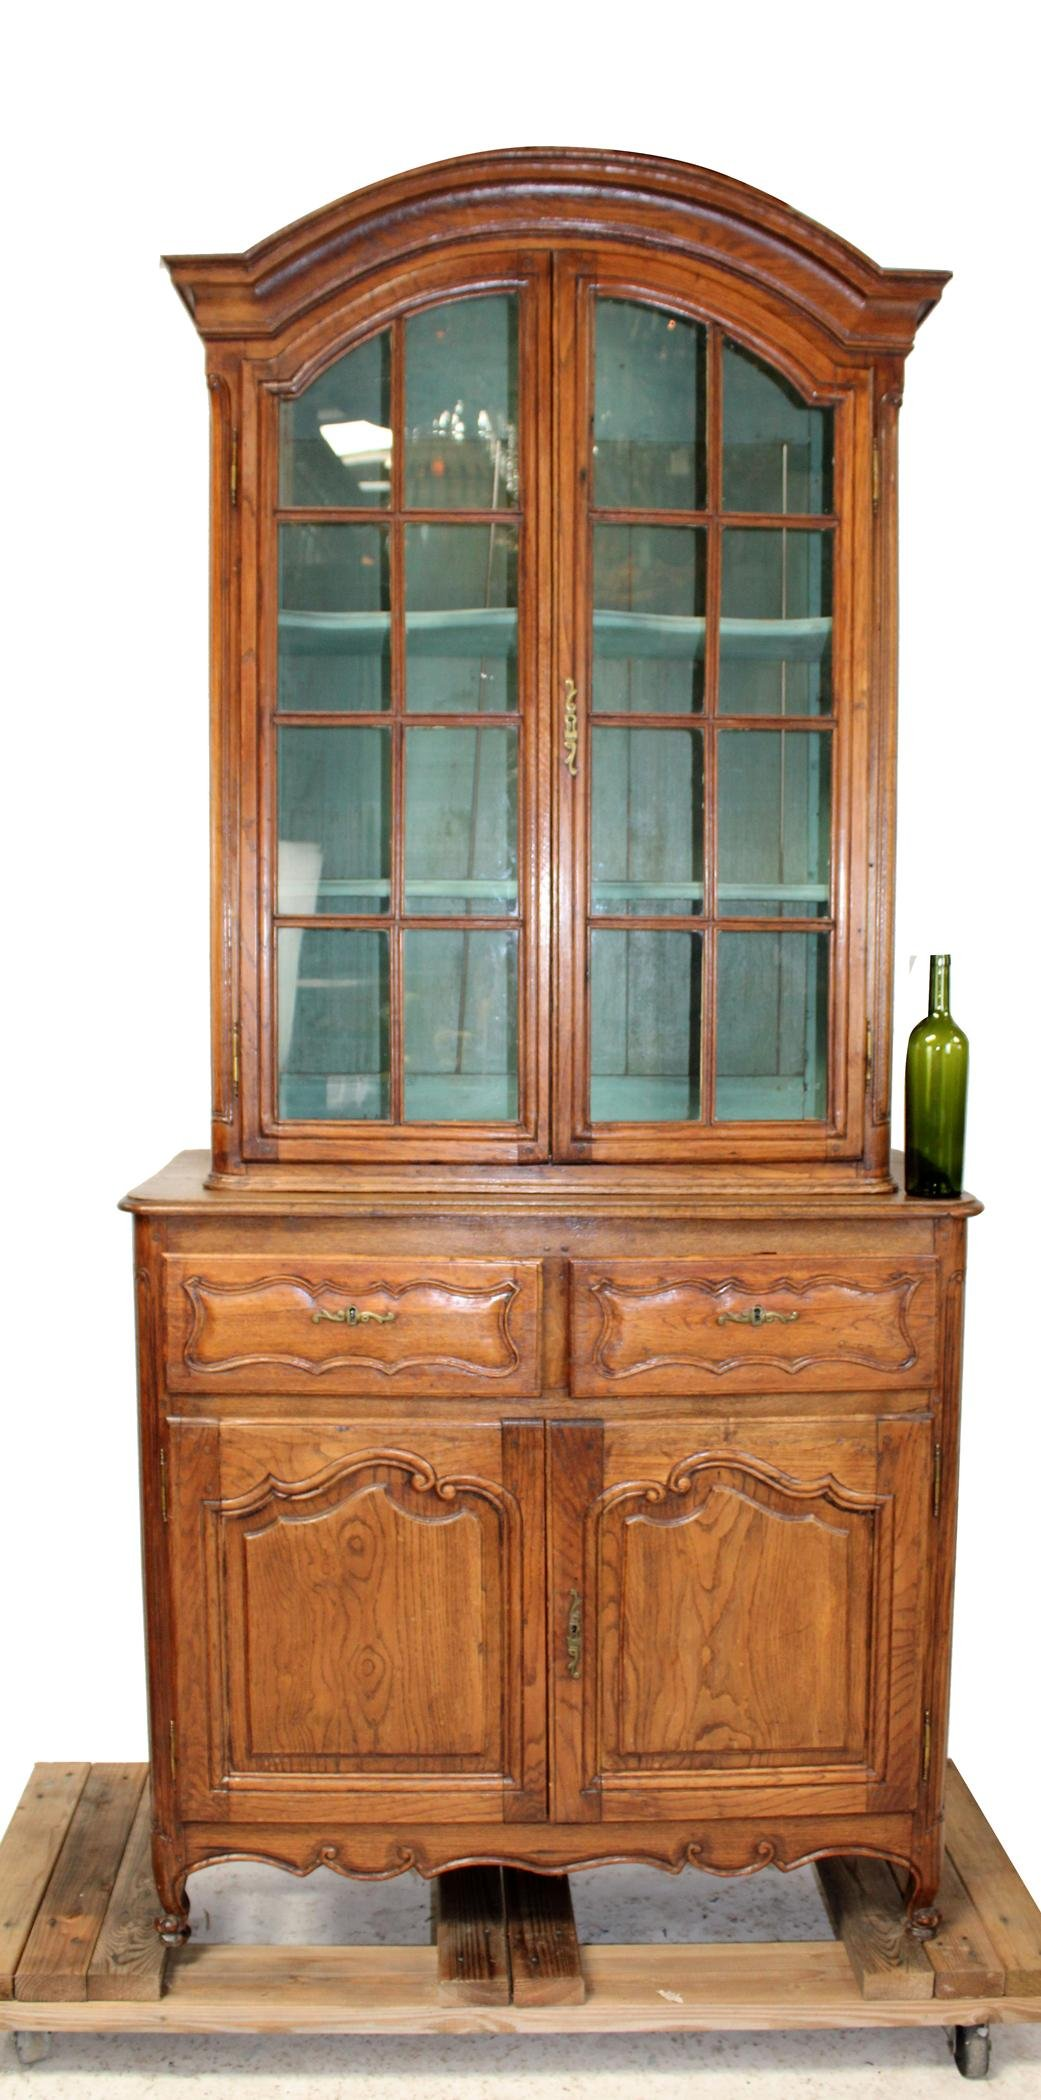 French Provincial arched top bookcase